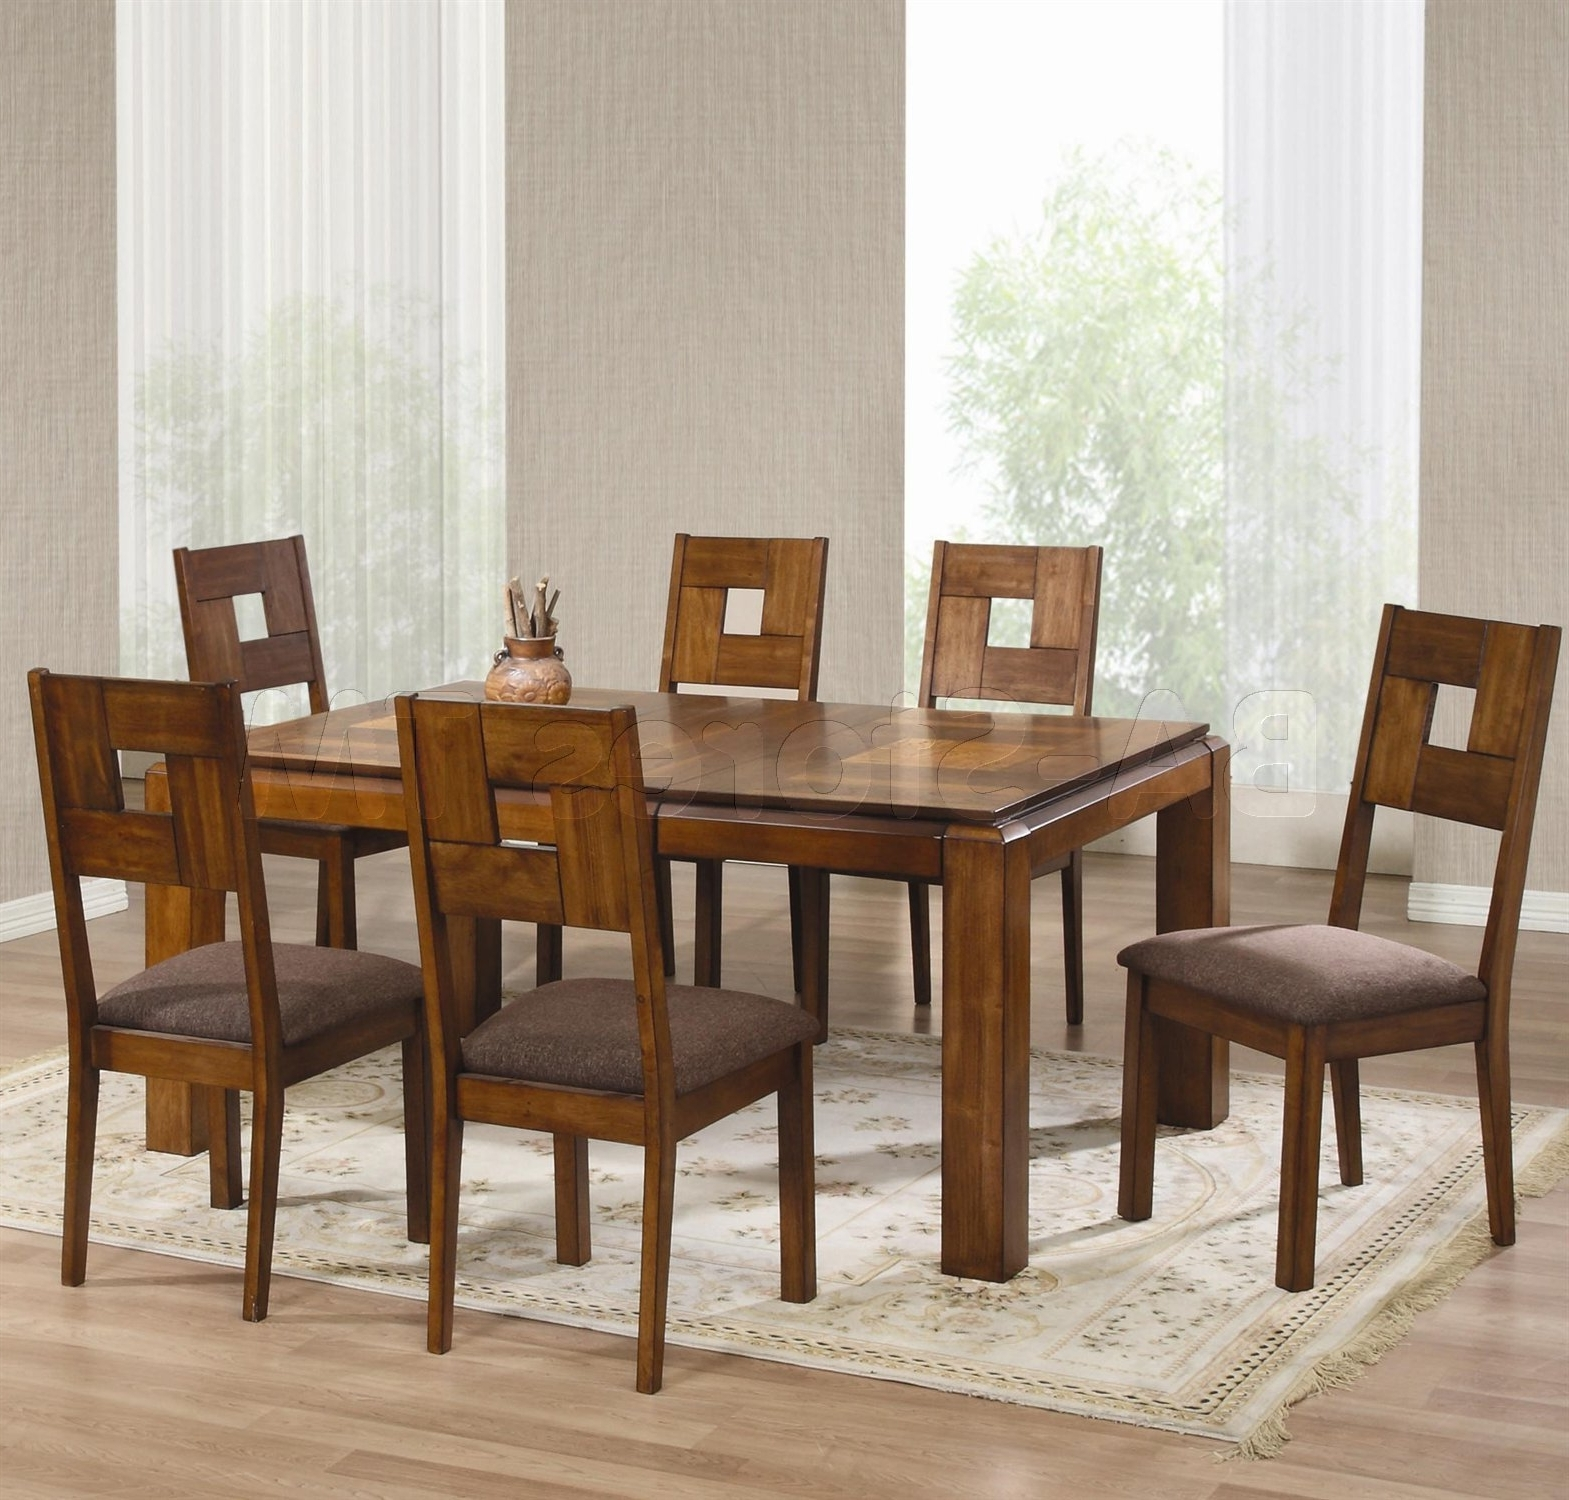 10 Seat Dining Tables And Chairs For Well Liked 10 Chair Dining Room Set 10 Seat Dining Room Table And Chairs (Gallery 25 of 25)